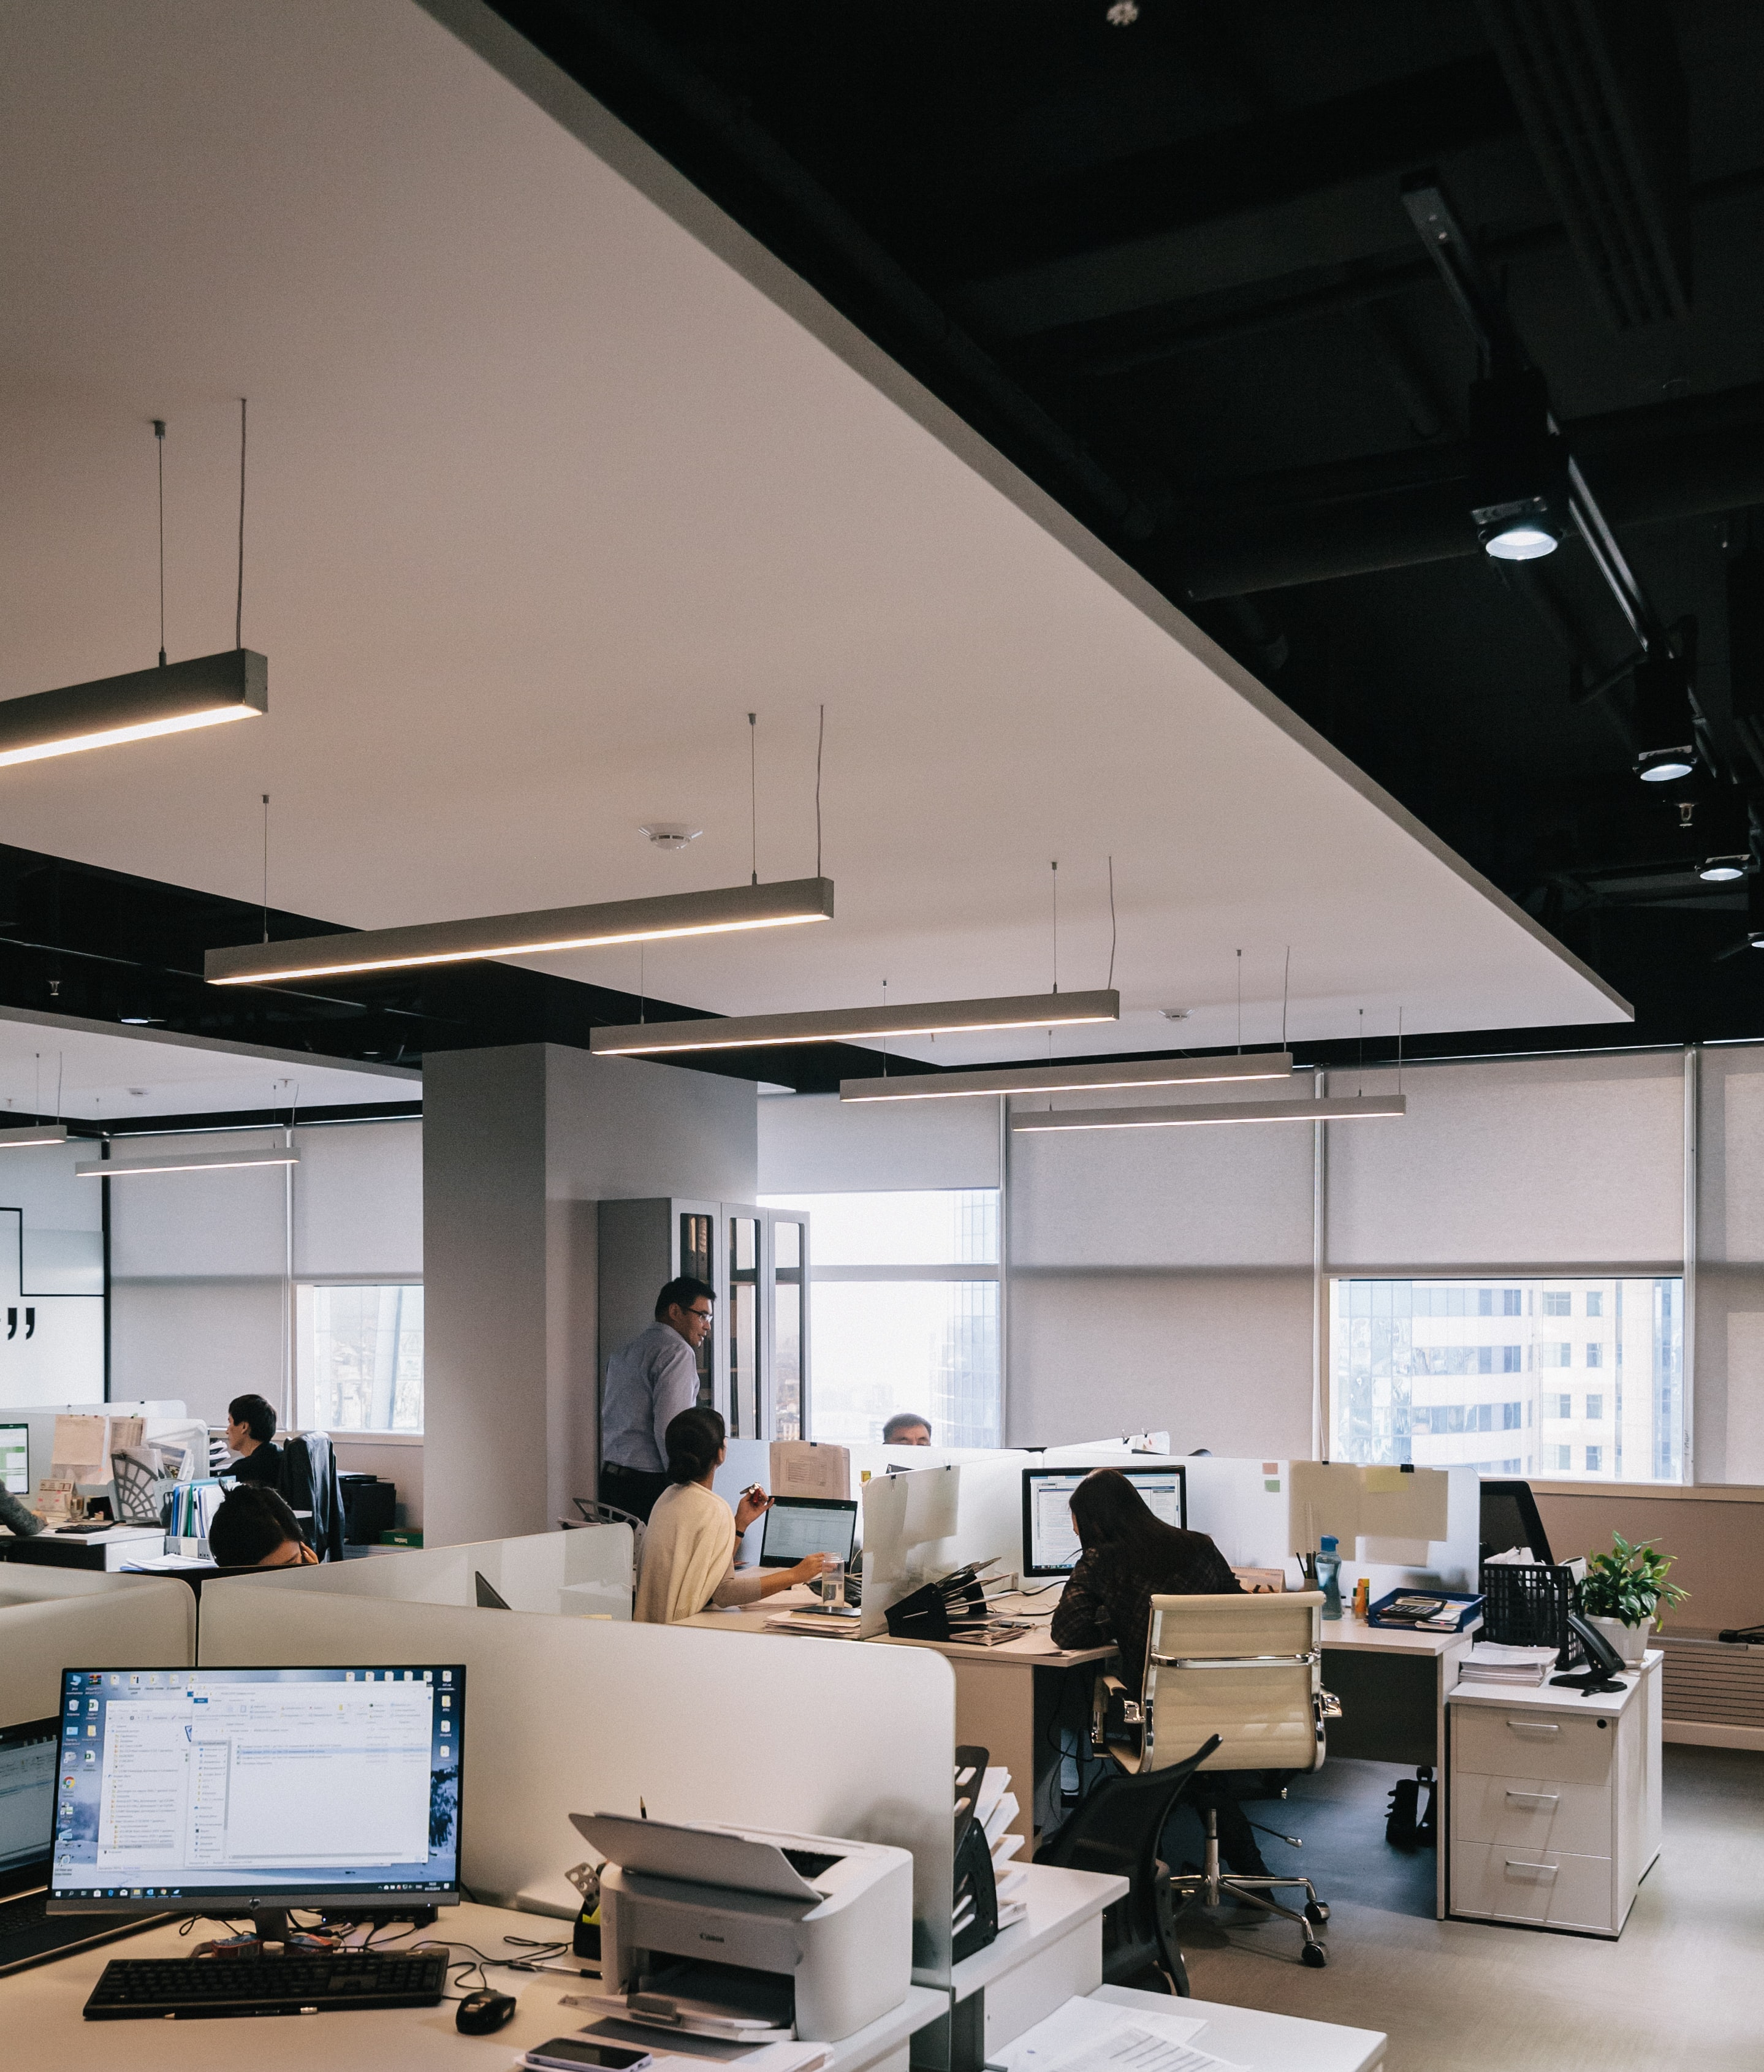 5 Ways To Make Your Office Eco-Friendly - James Michael Plumlee Financial Advisor - Thrive Global